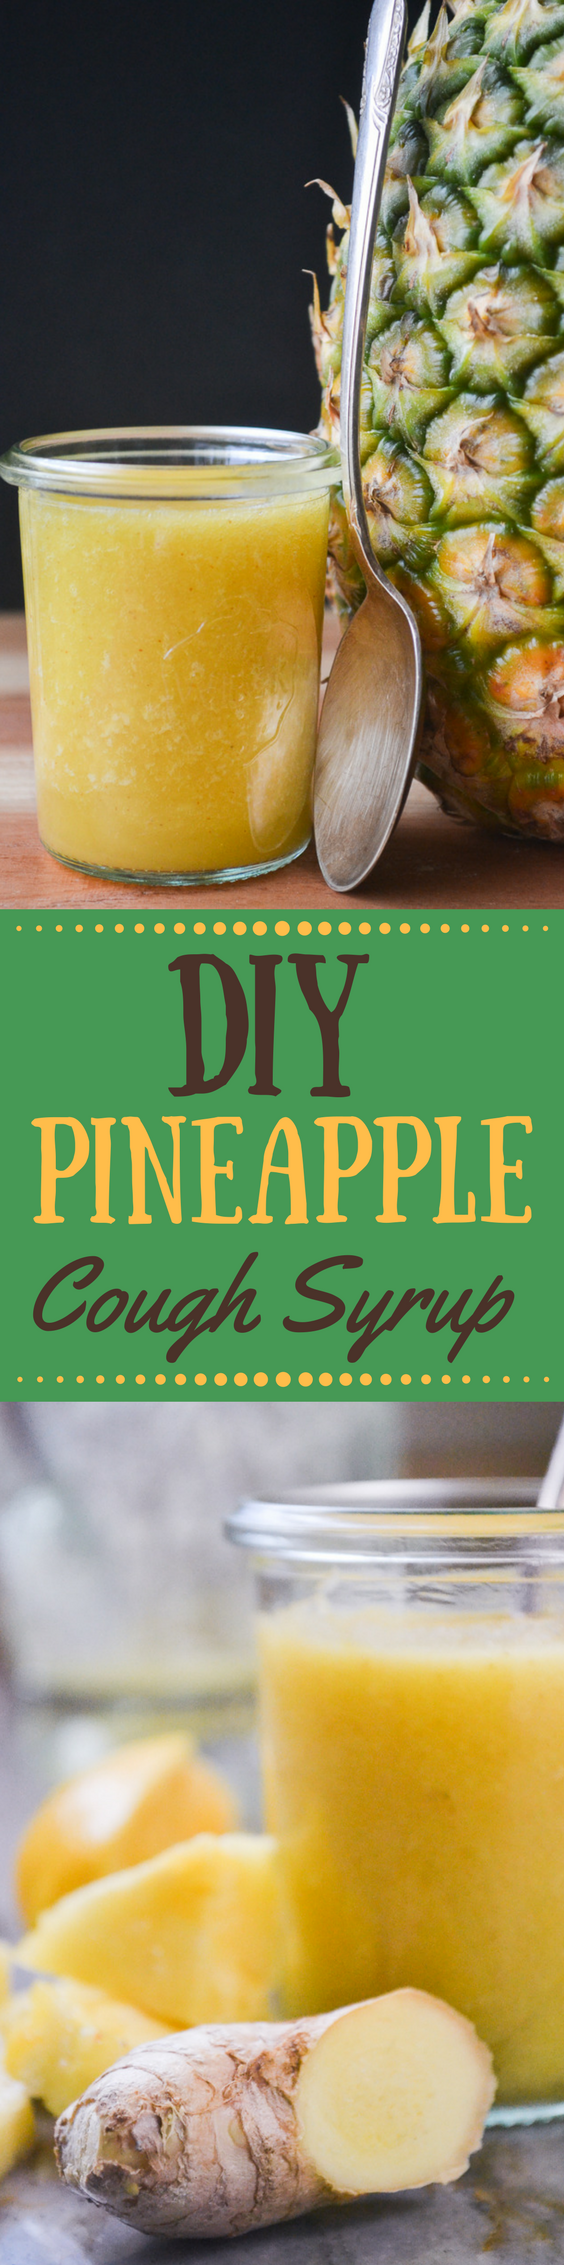 All Natural DIY Pineapple Cough Syrup #naturalcures